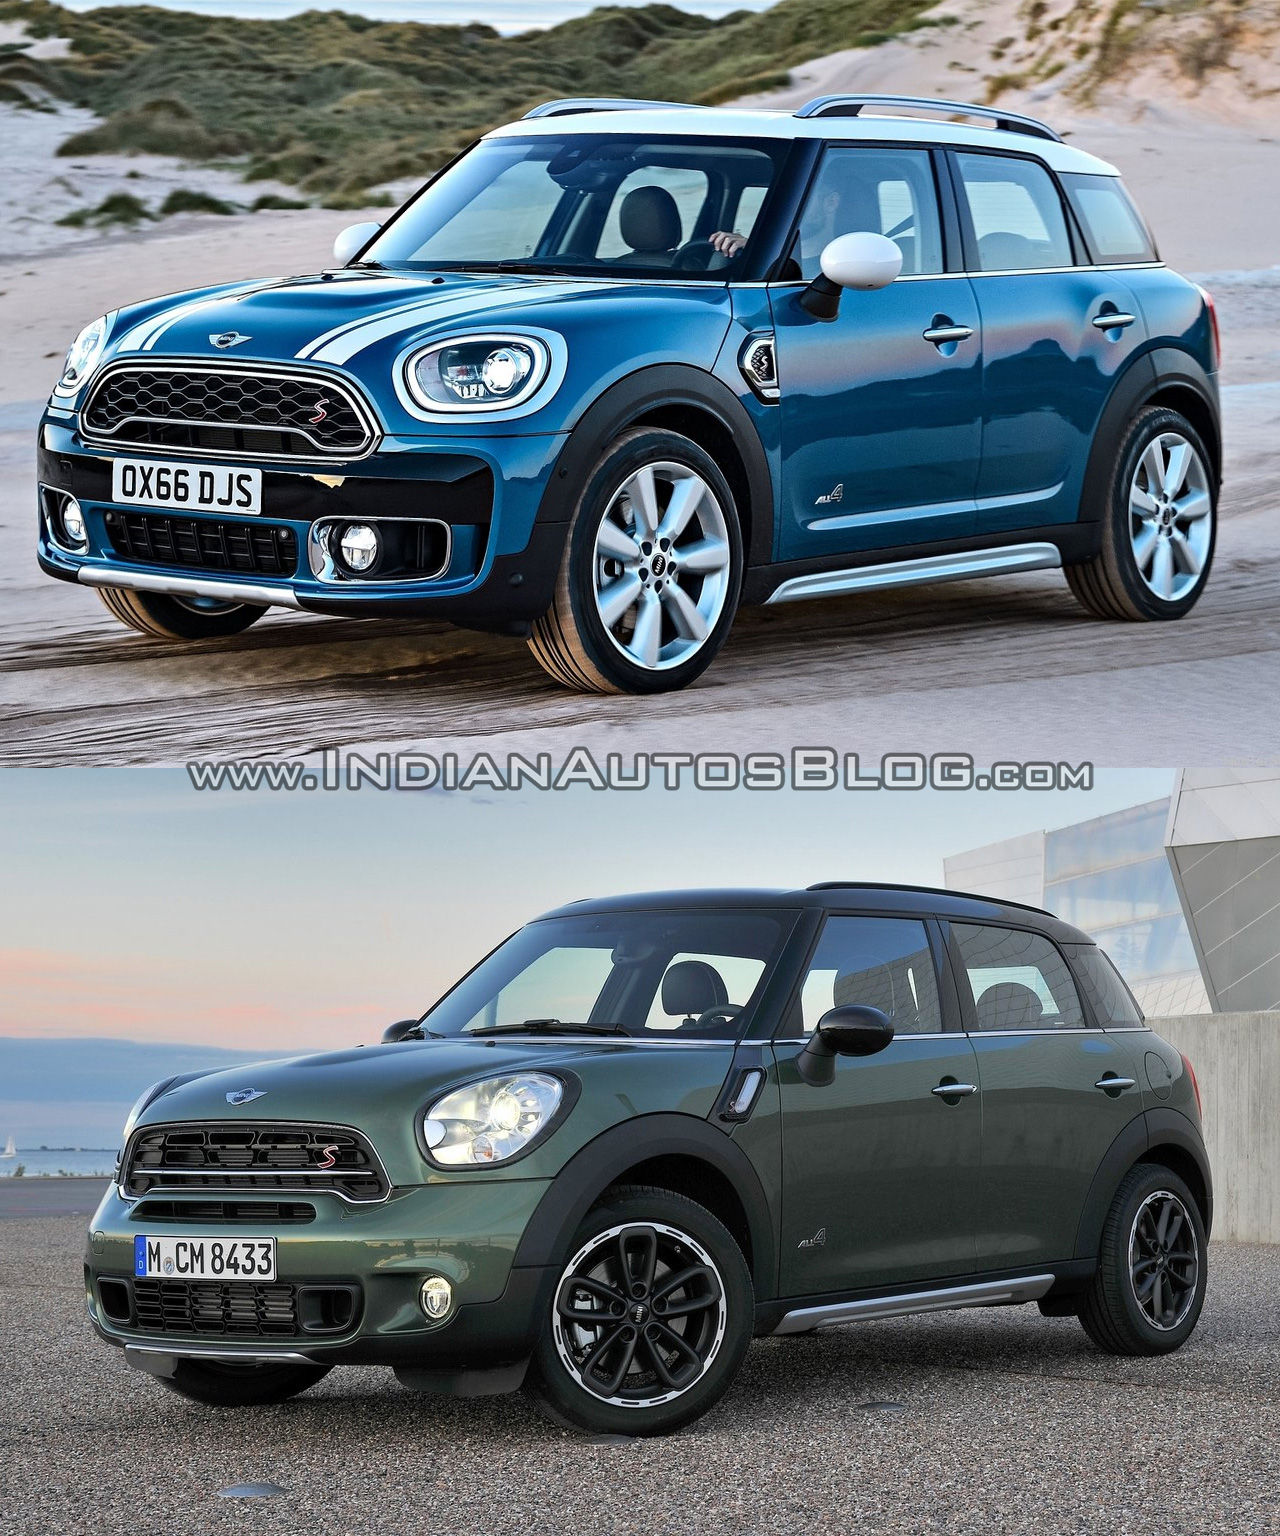 2017 Mini Countryman Vs 2014 Mini Countryman Old Vs New